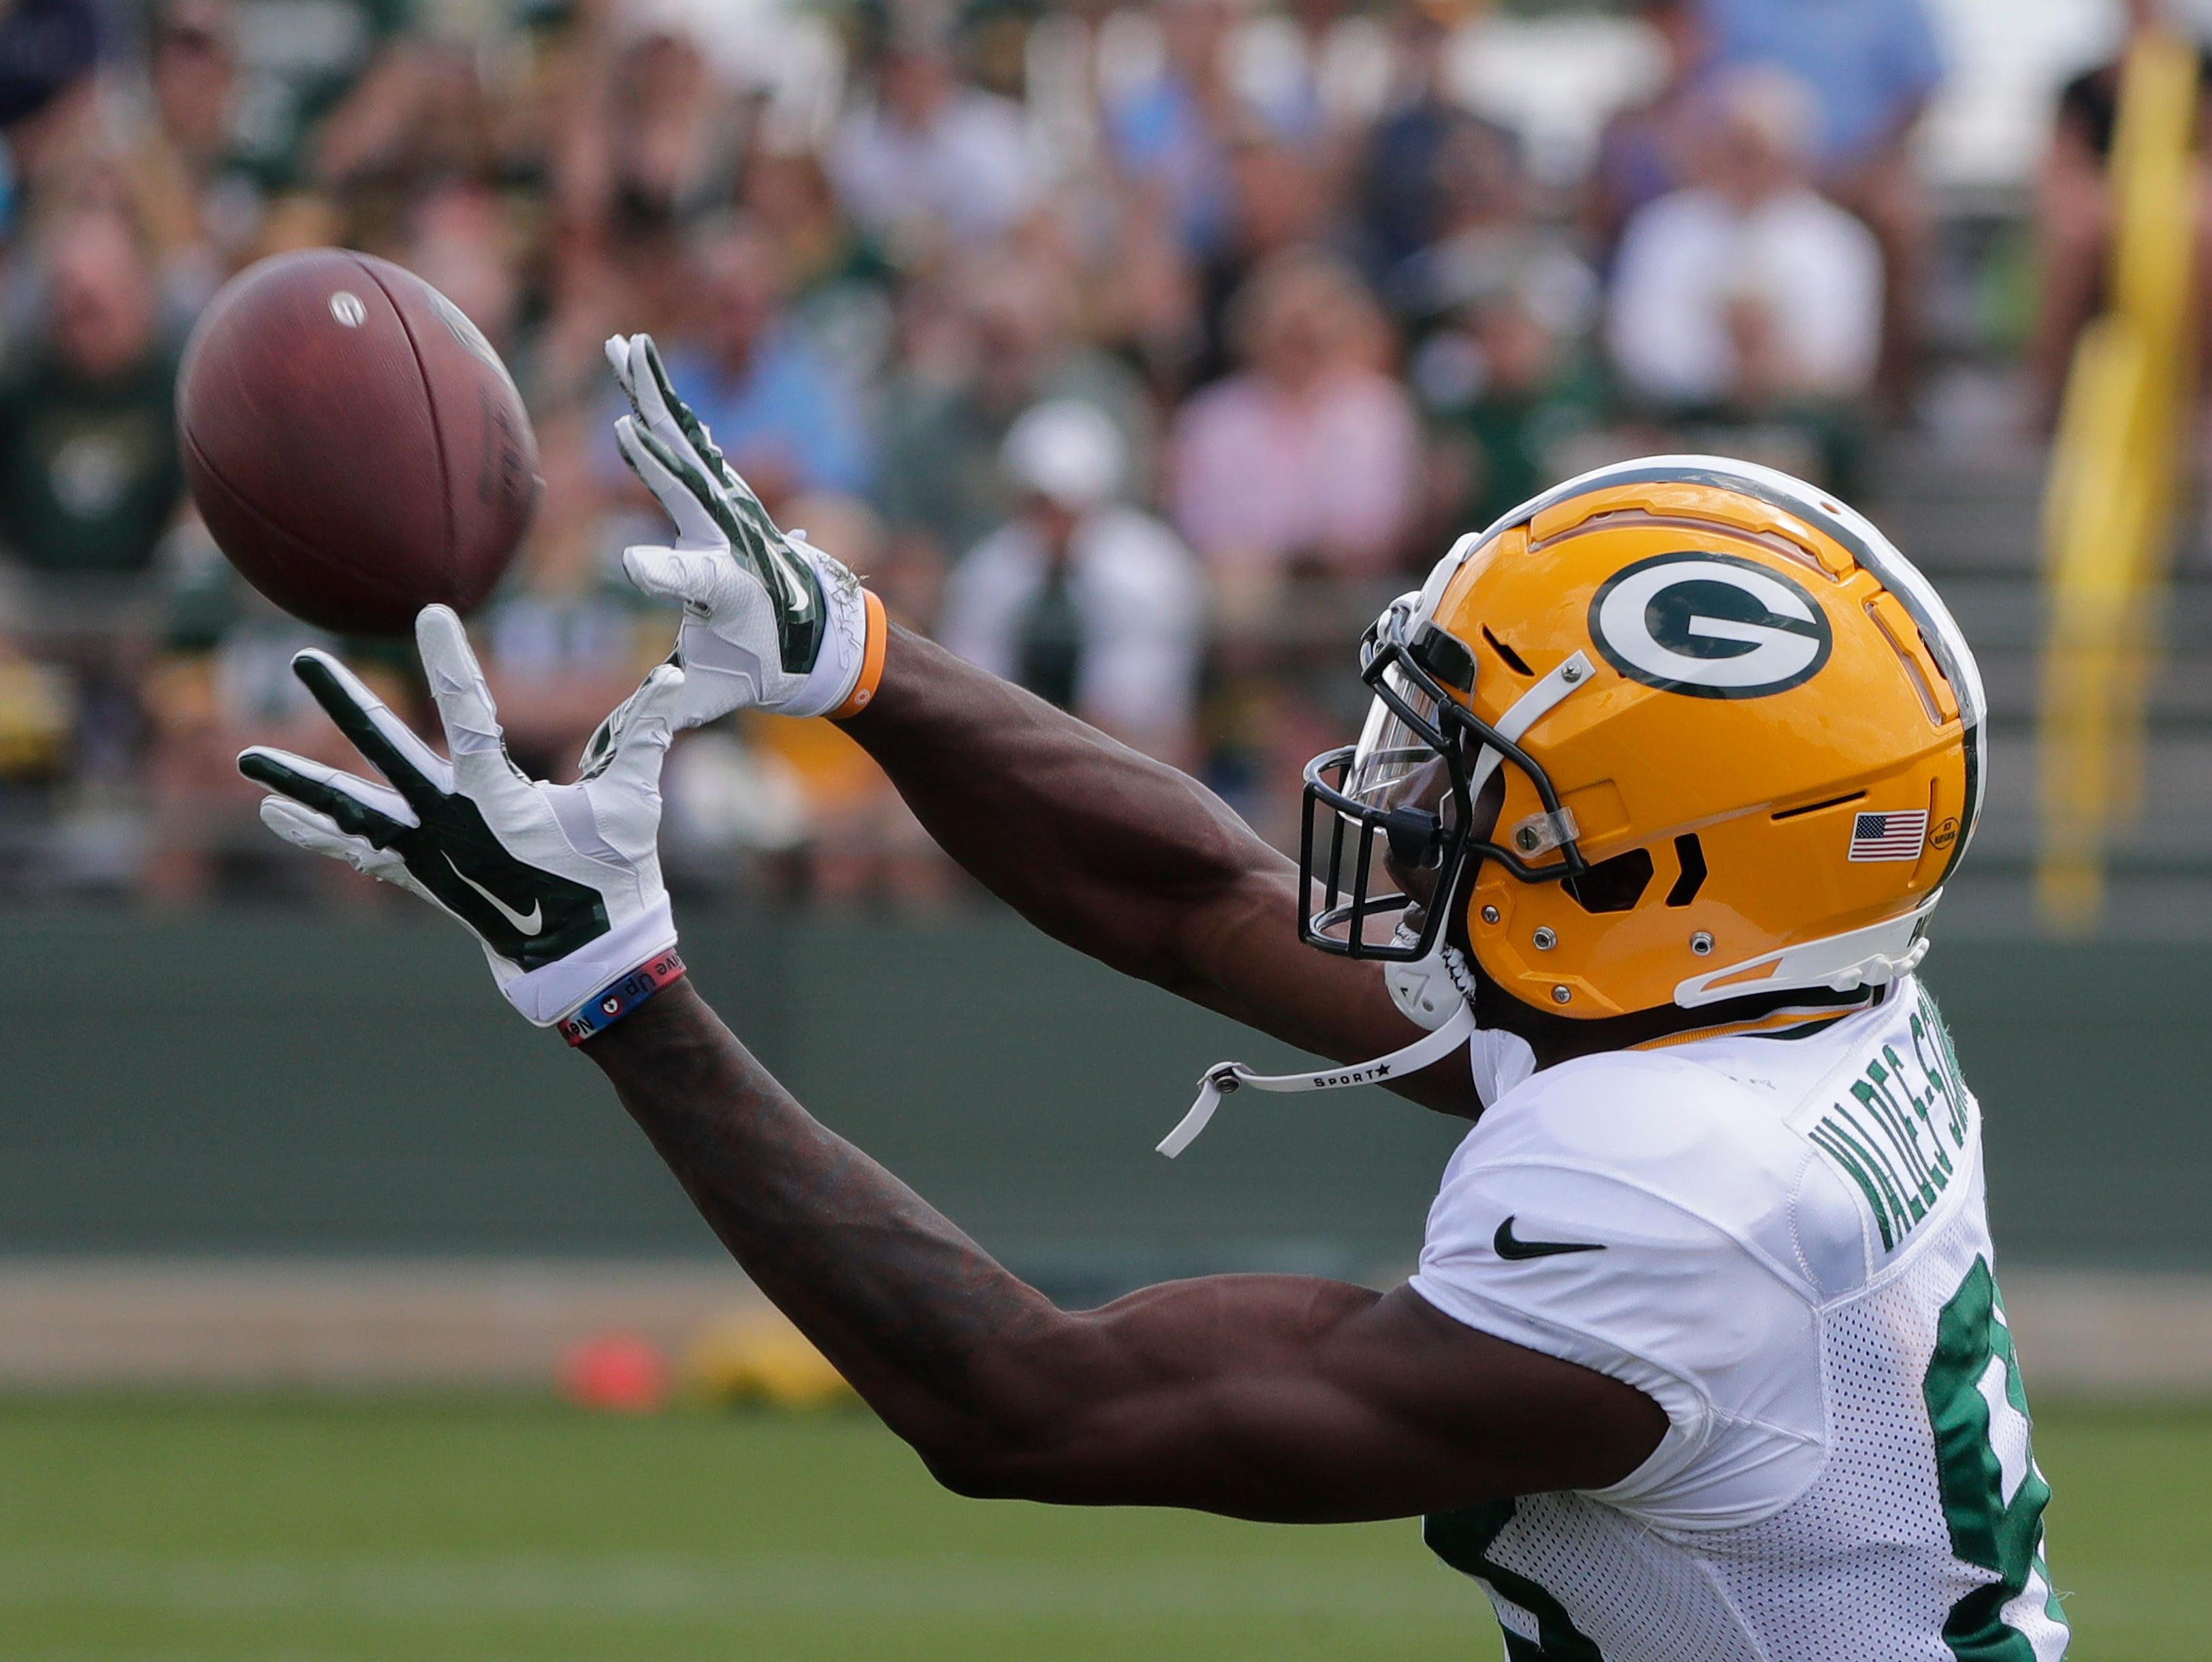 Green Bay Packers wide receiver Marquez Valdes-Scantling (83) during training camp practice at Ray Nitschke Field on Friday, August 3, 2018 in Ashwaubenon, Wis. 